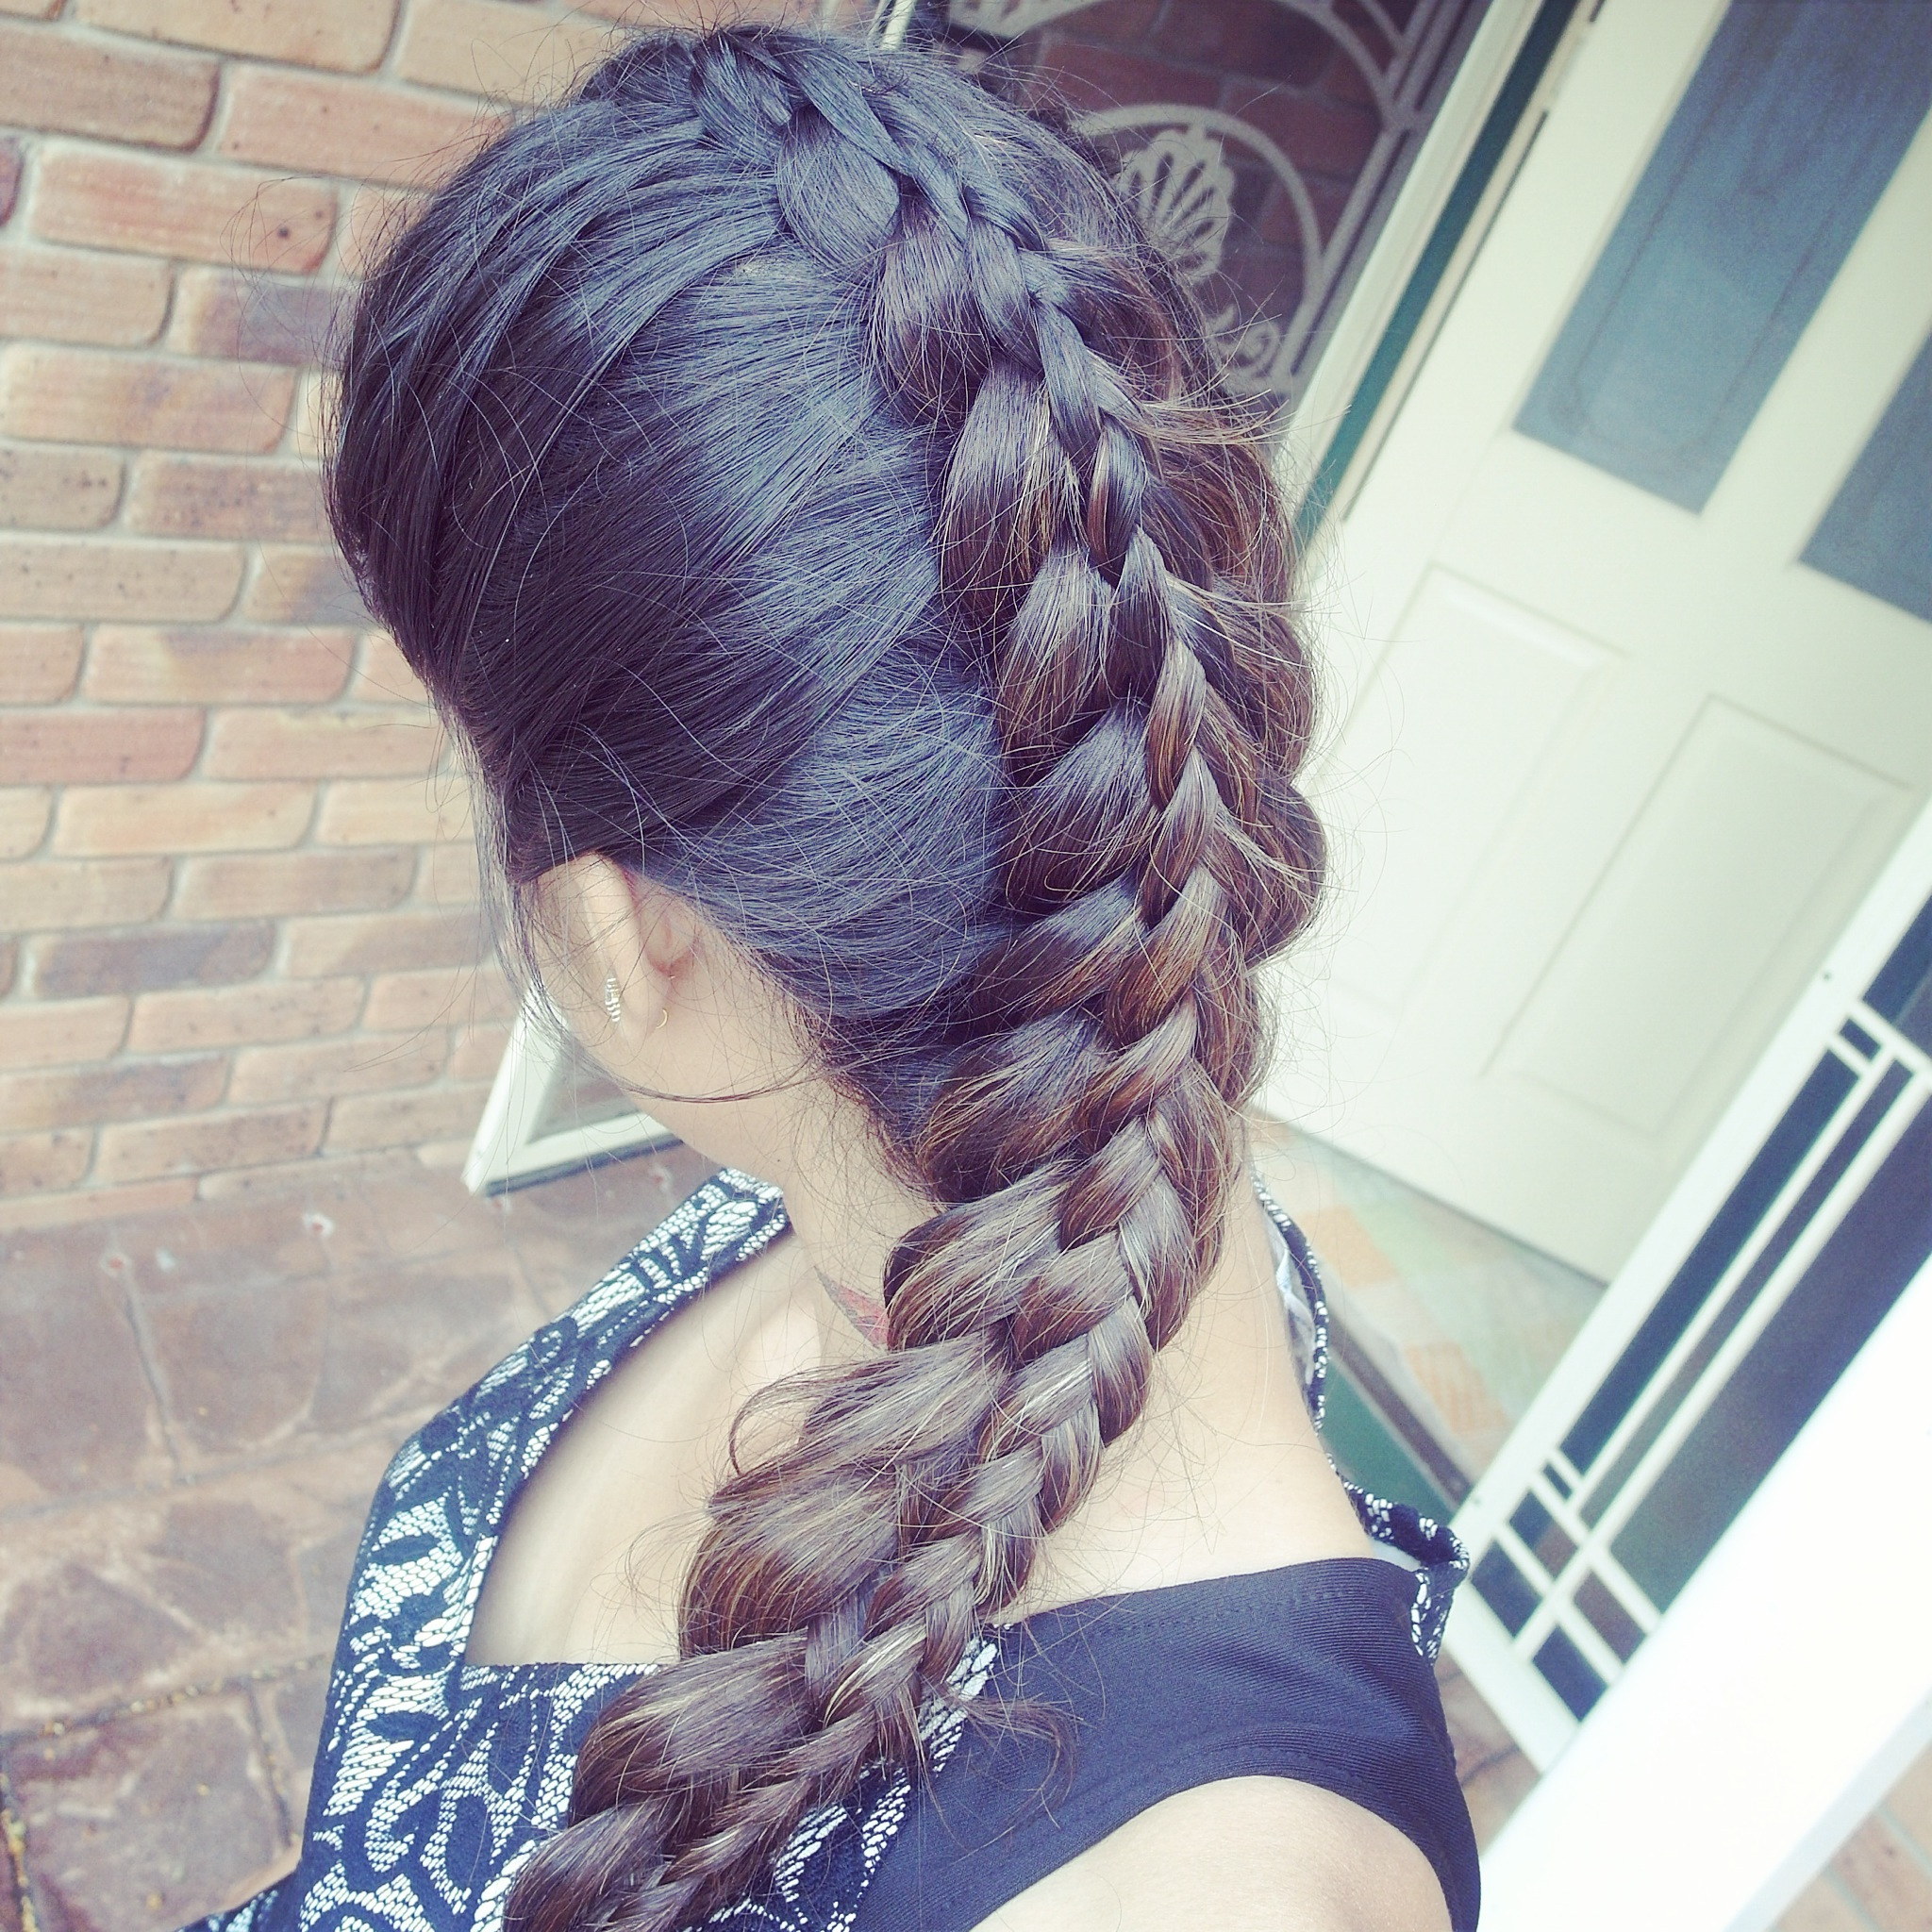 Tanvi Vayla » 3 Strand Dutch Stacked Braid Throughout Popular Three Strand Pigtails Braided Hairstyles (View 19 of 20)